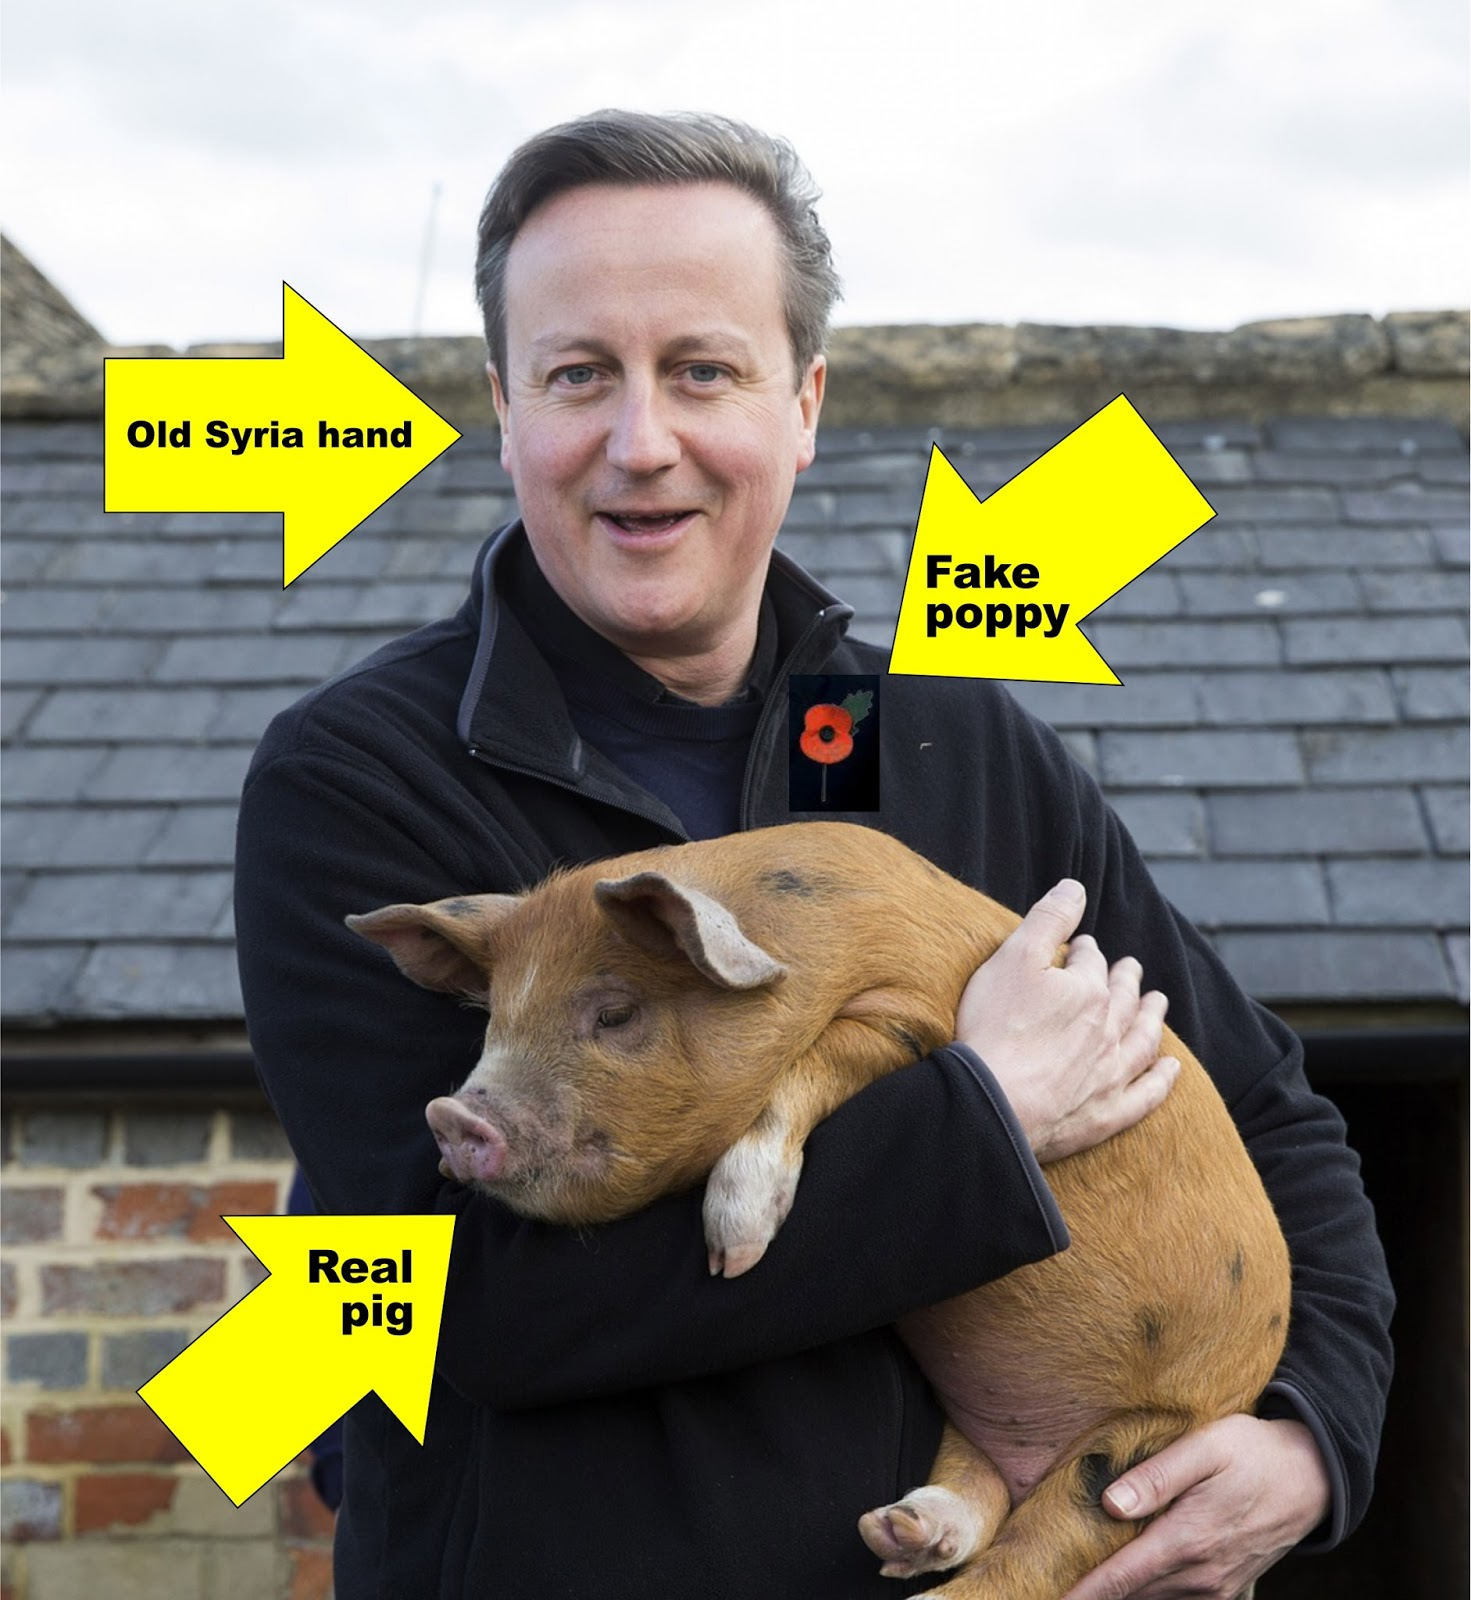 http://www.theguardian.com/politics/2015/nov/02/poppy-photoshopped-david-cameron-facebook-picture